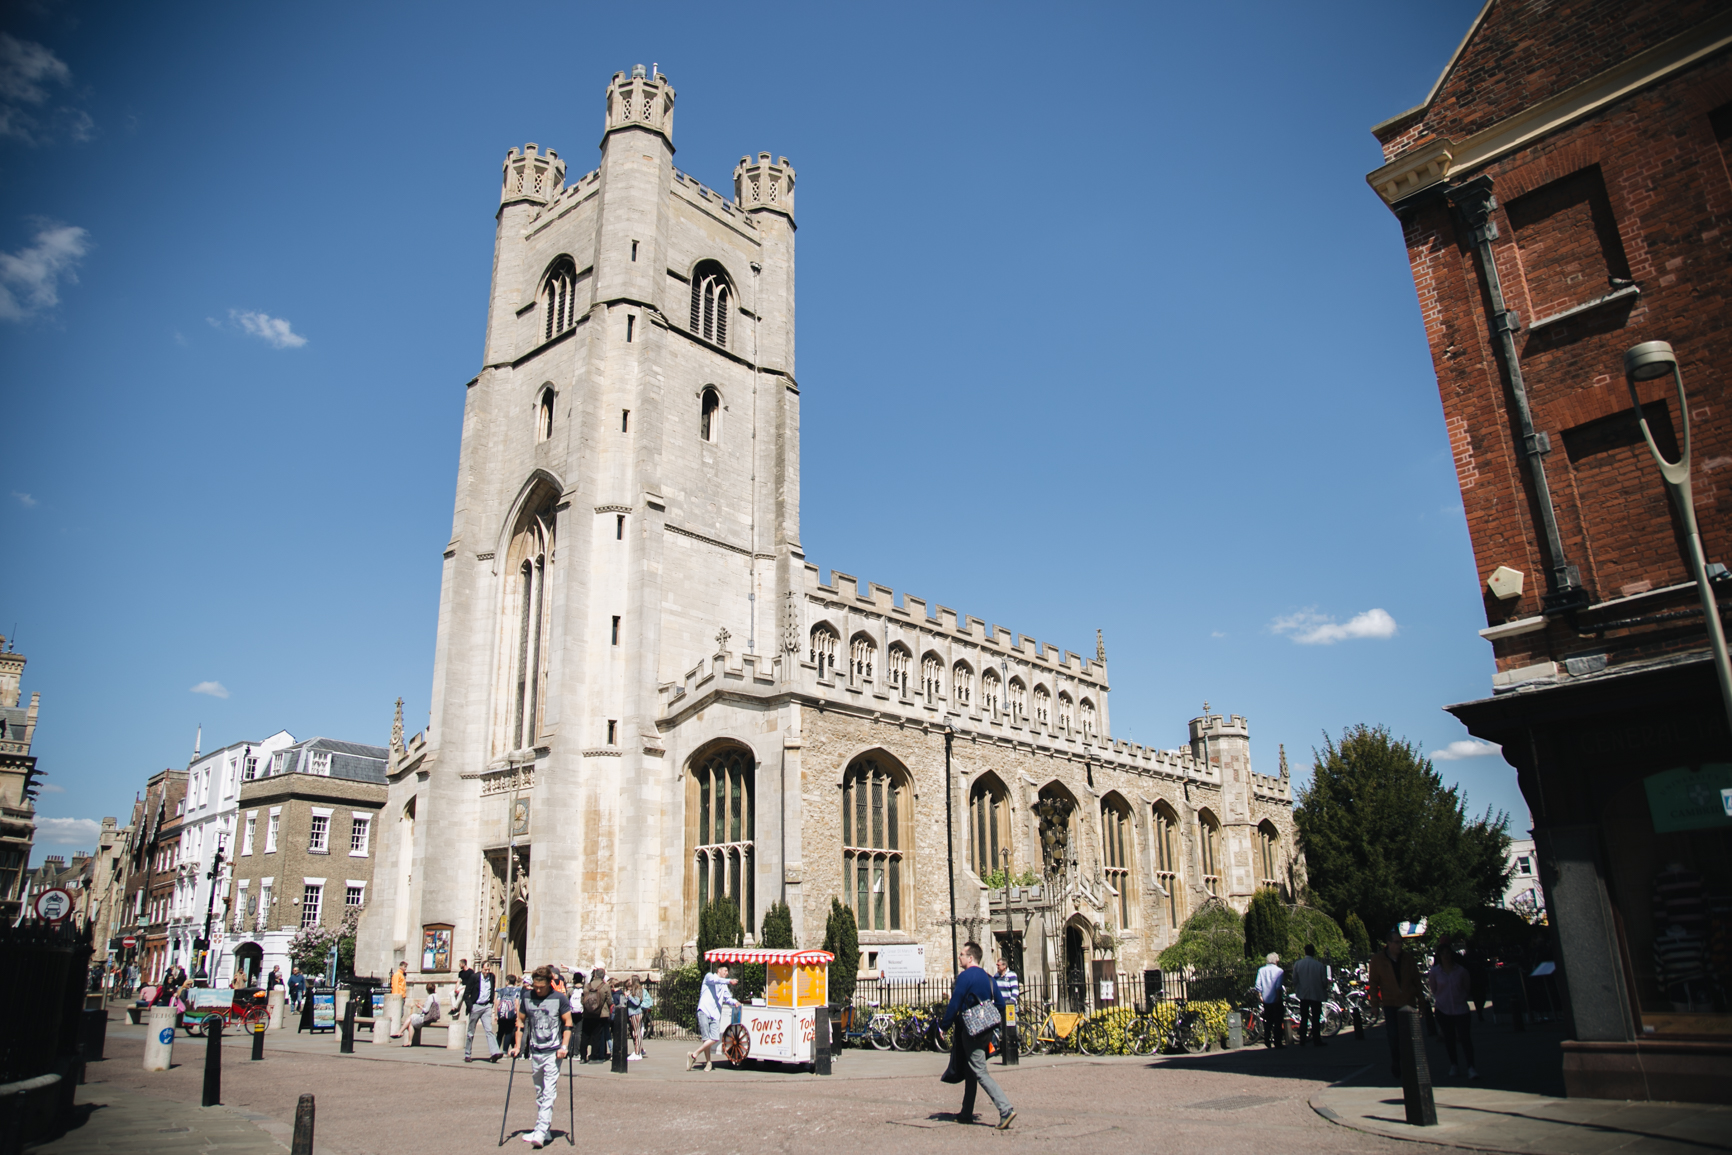 St-MARY-the-GREAT-cambridge-visit.jpg